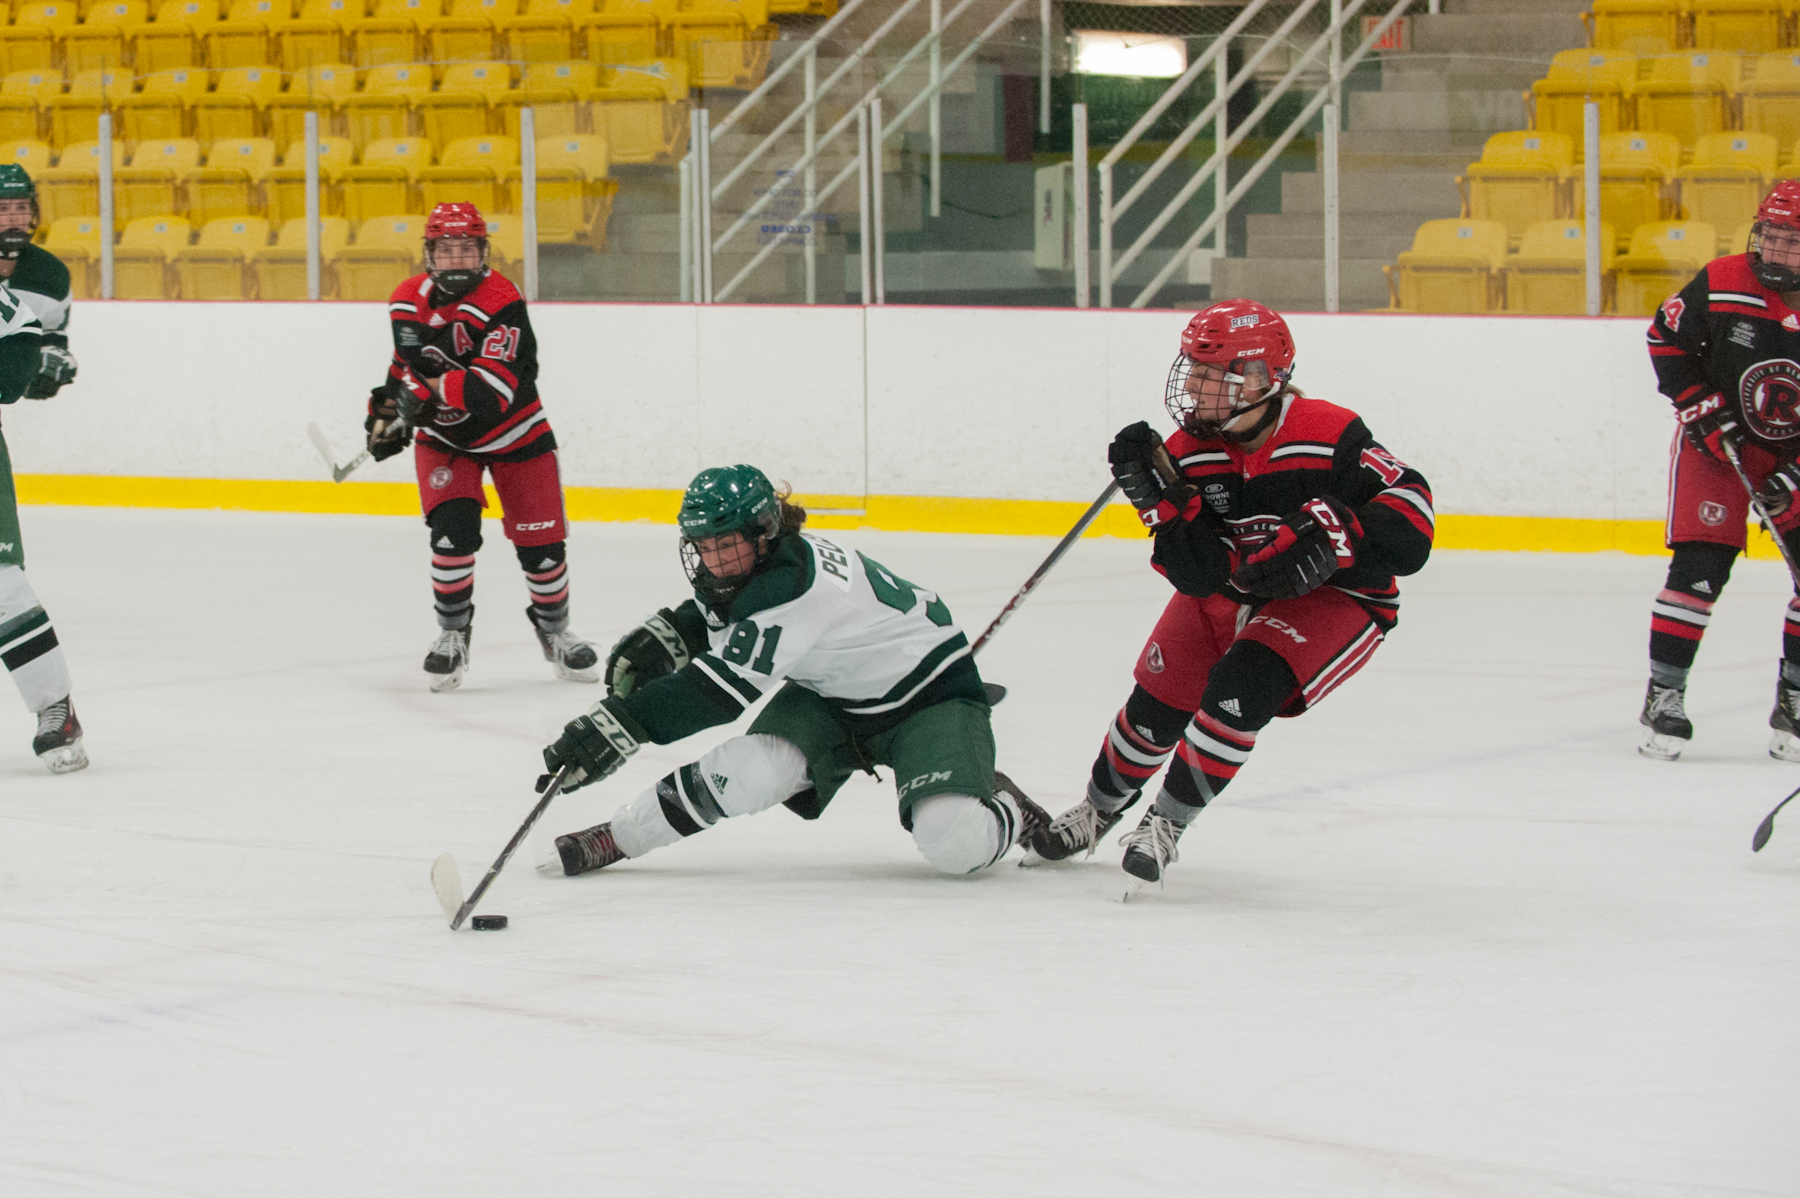 Panthers put in complete effort in 5-0 shutout of UNB